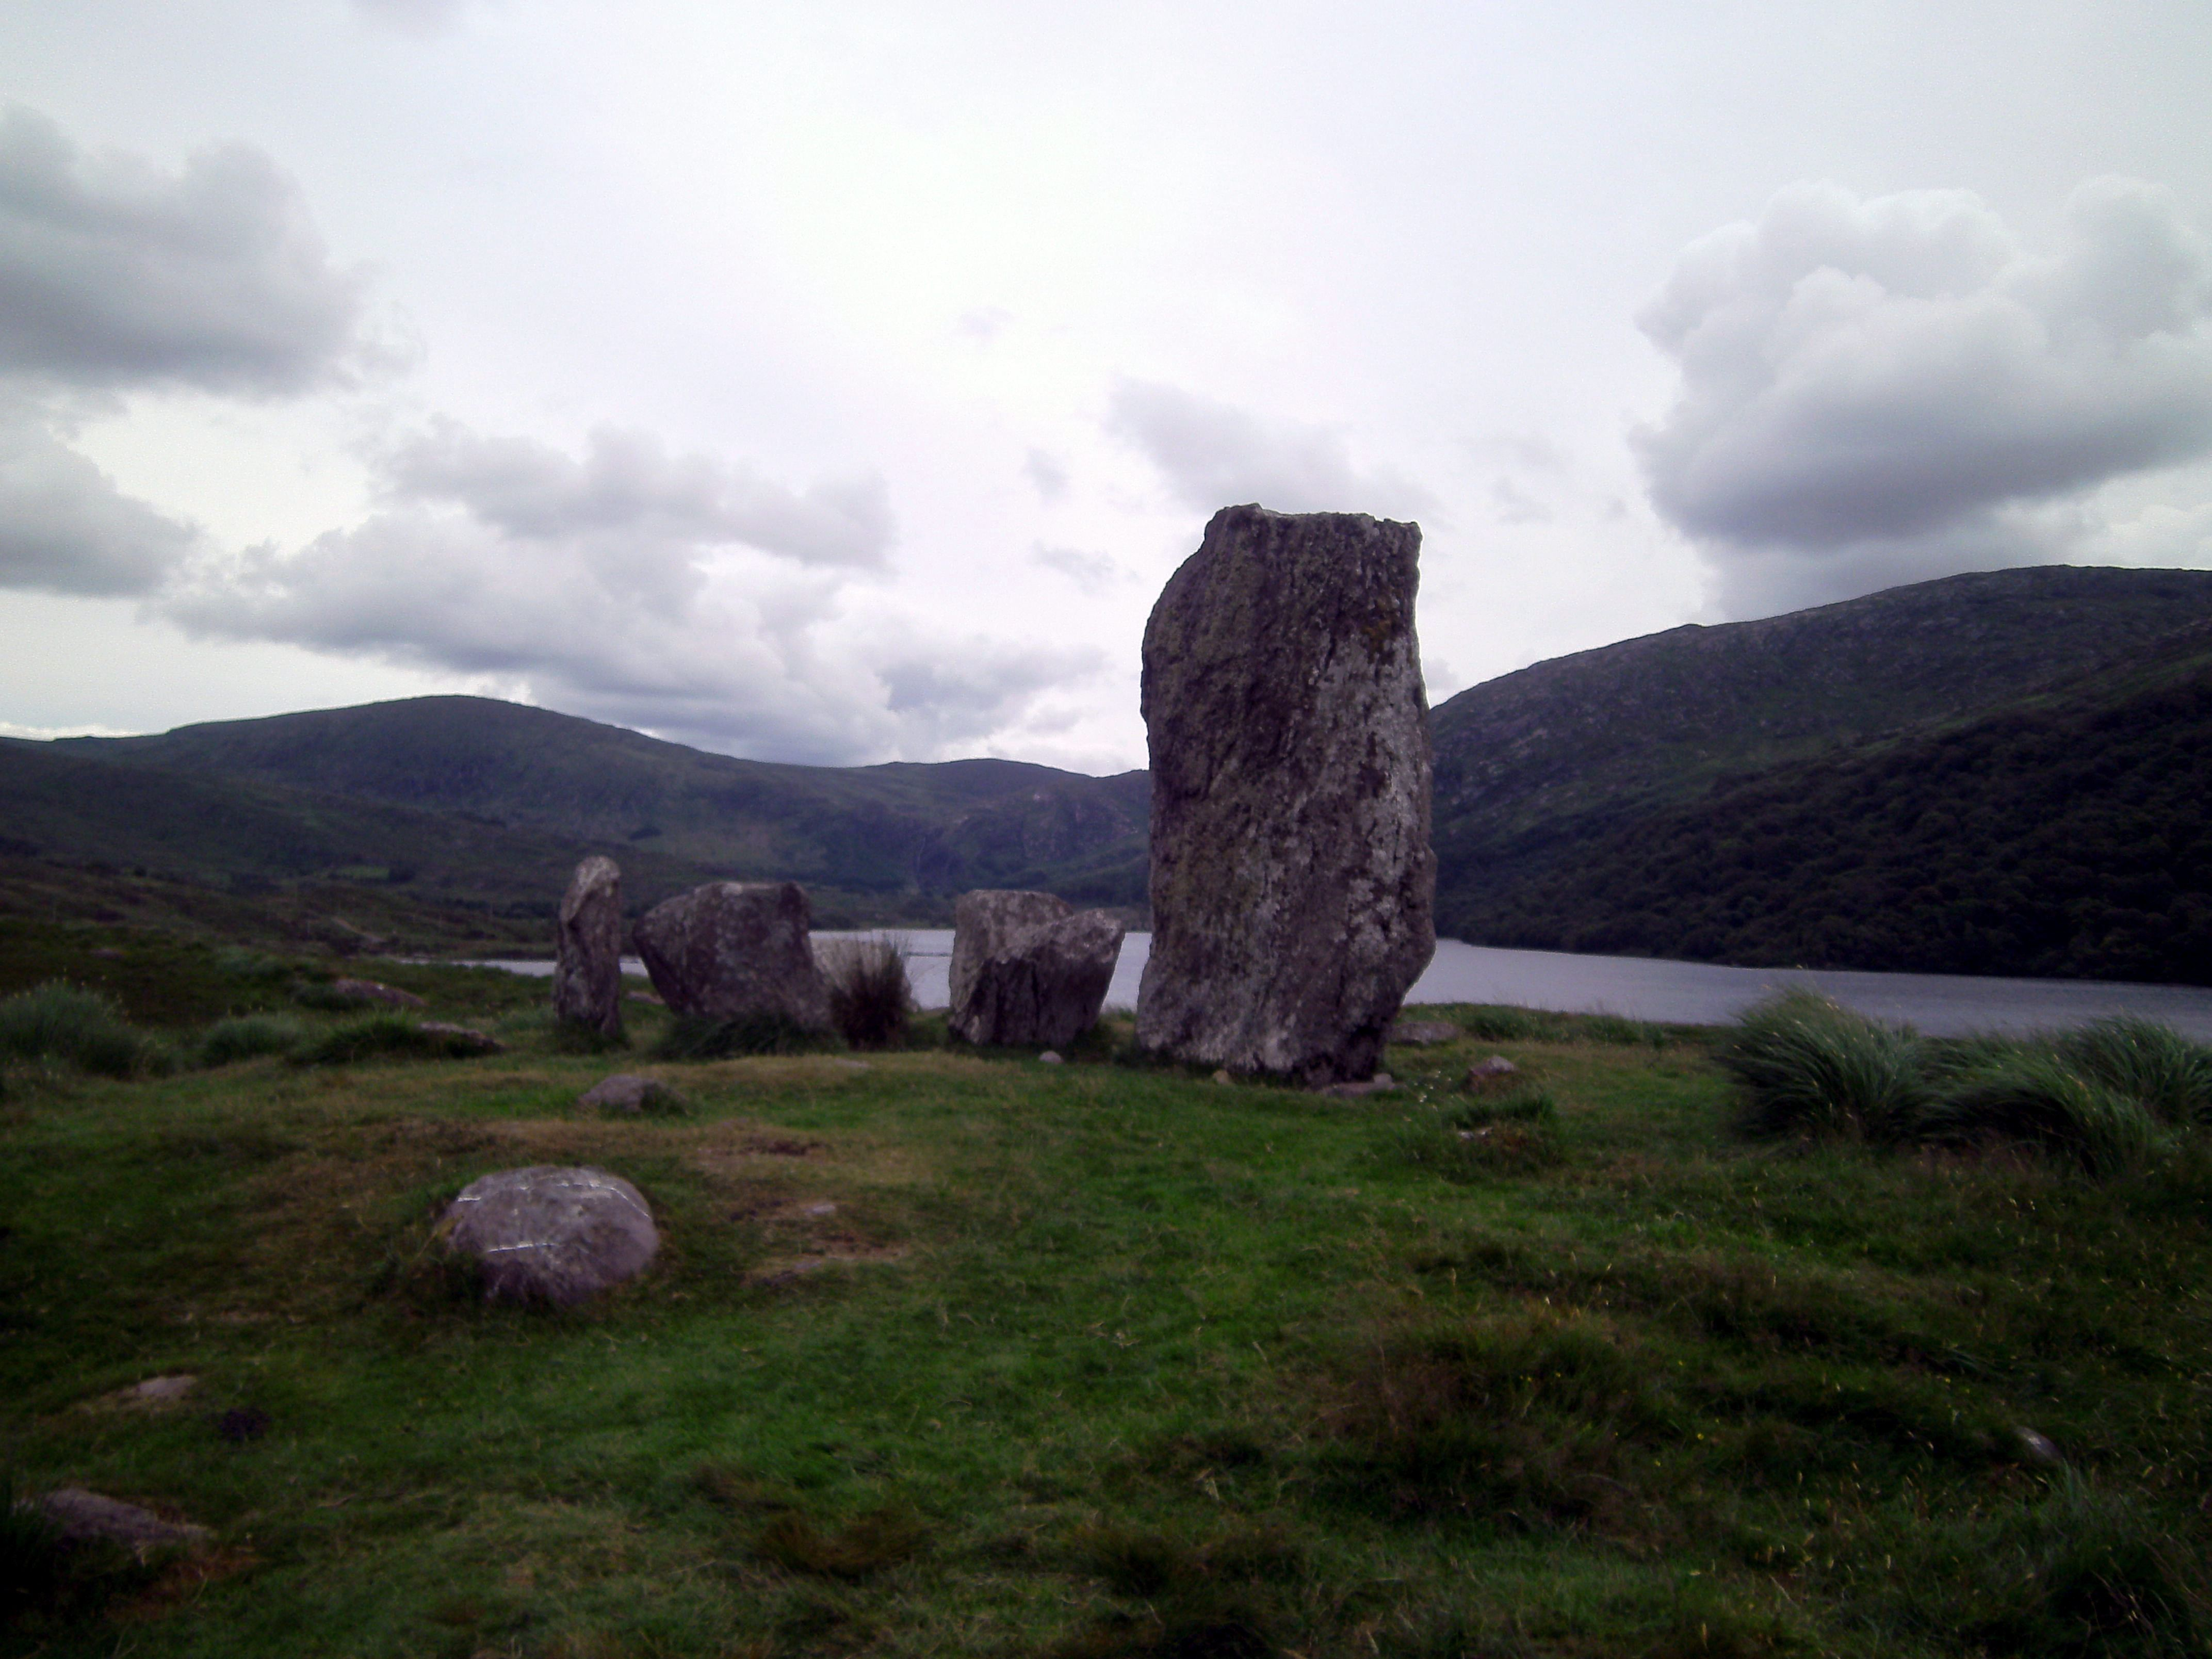 Pics from Ireland tours Uragh Stone Circle